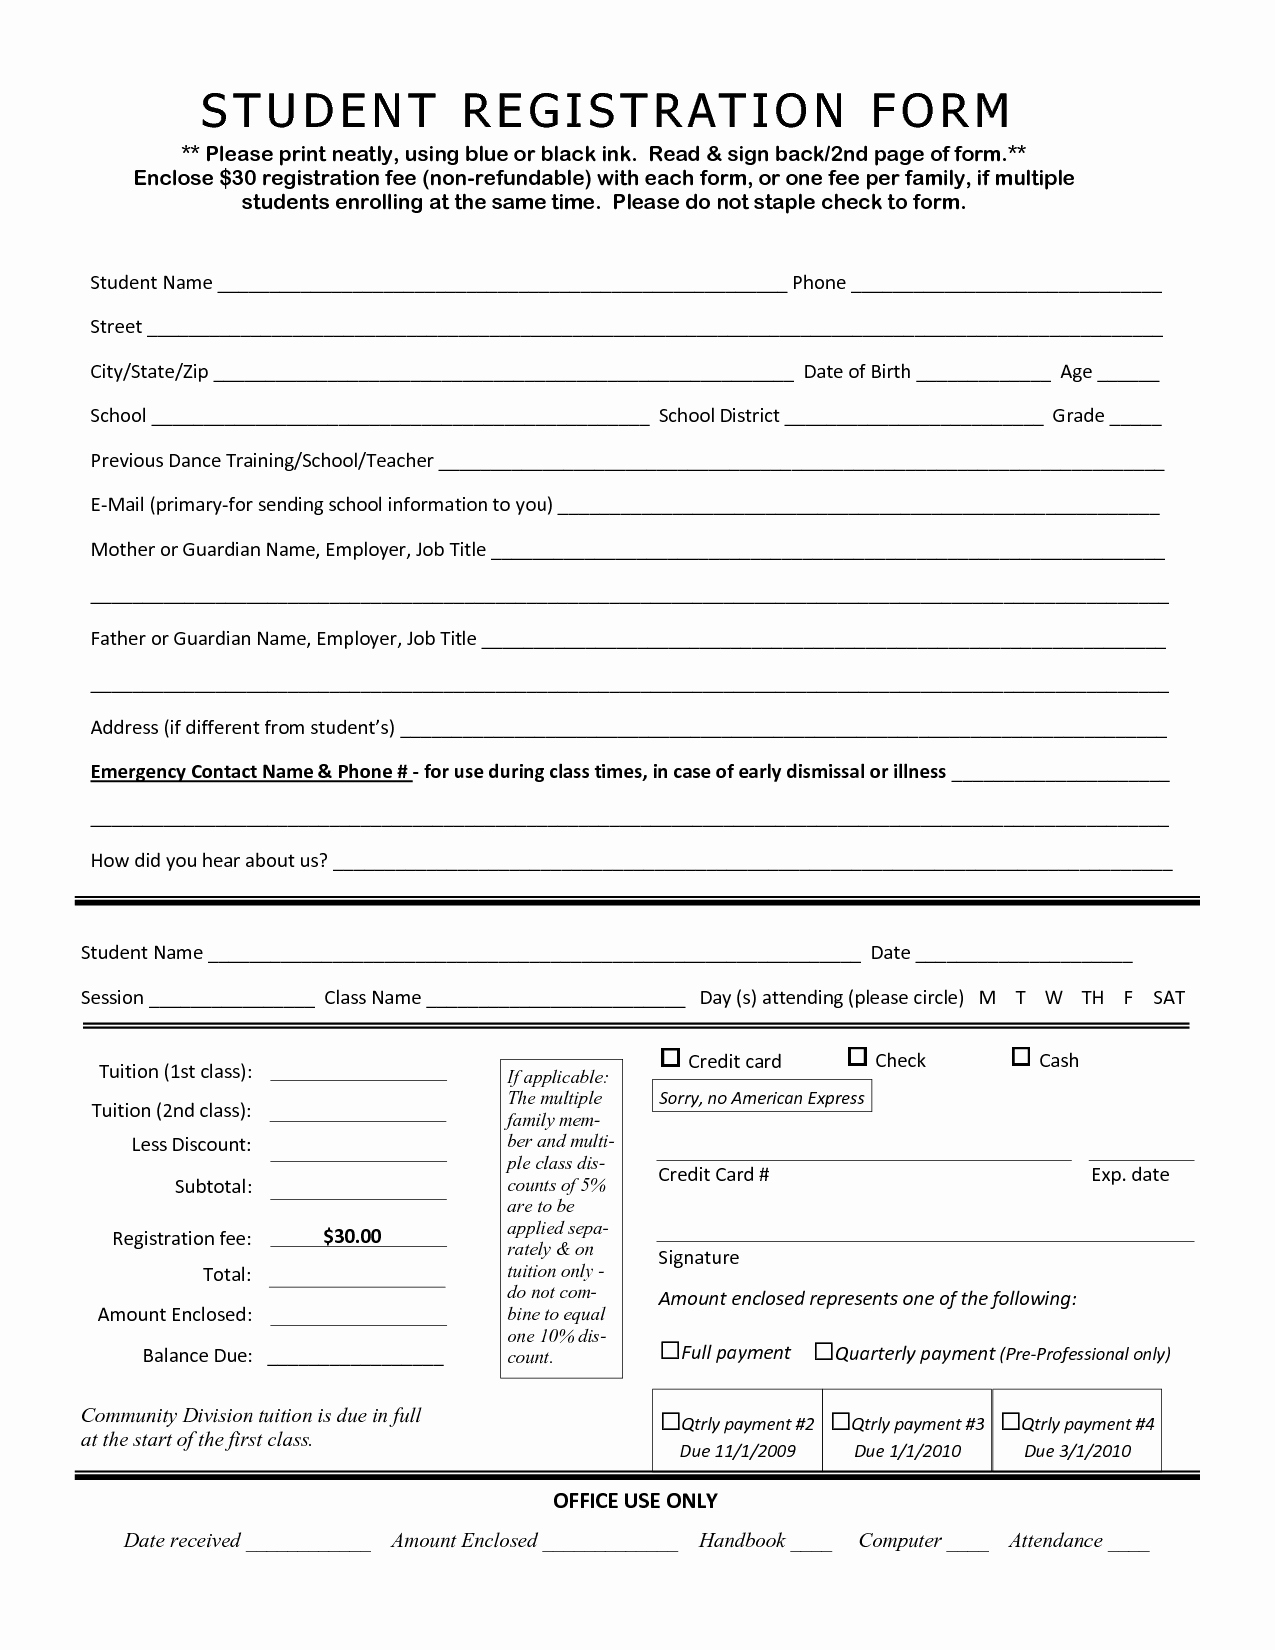 Free Registration forms Template Best Of Student Application form Template Portablegasgrillweber